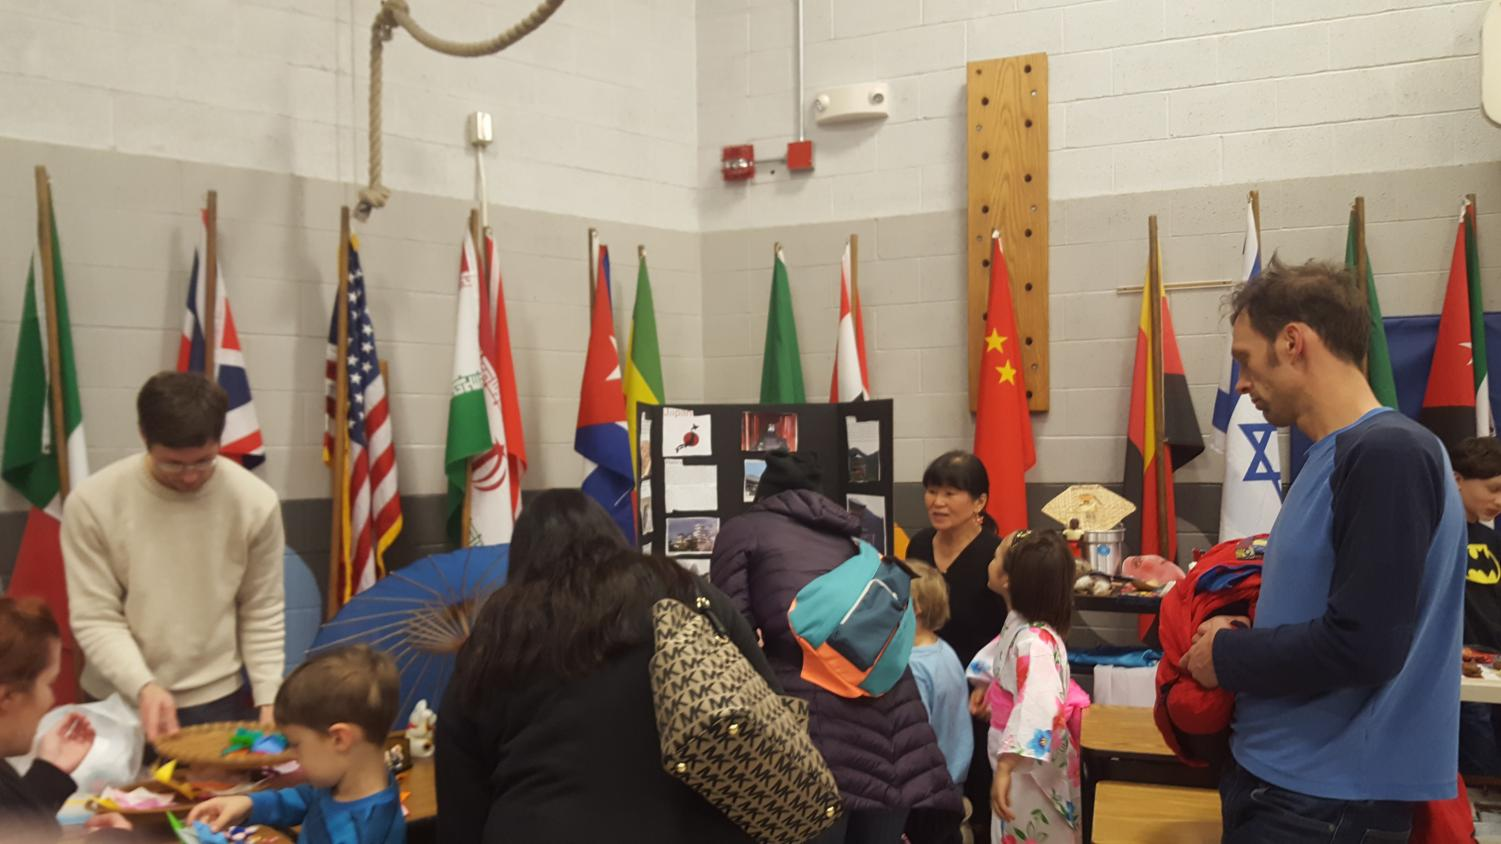 Elementary students and parents visit a country's booth.